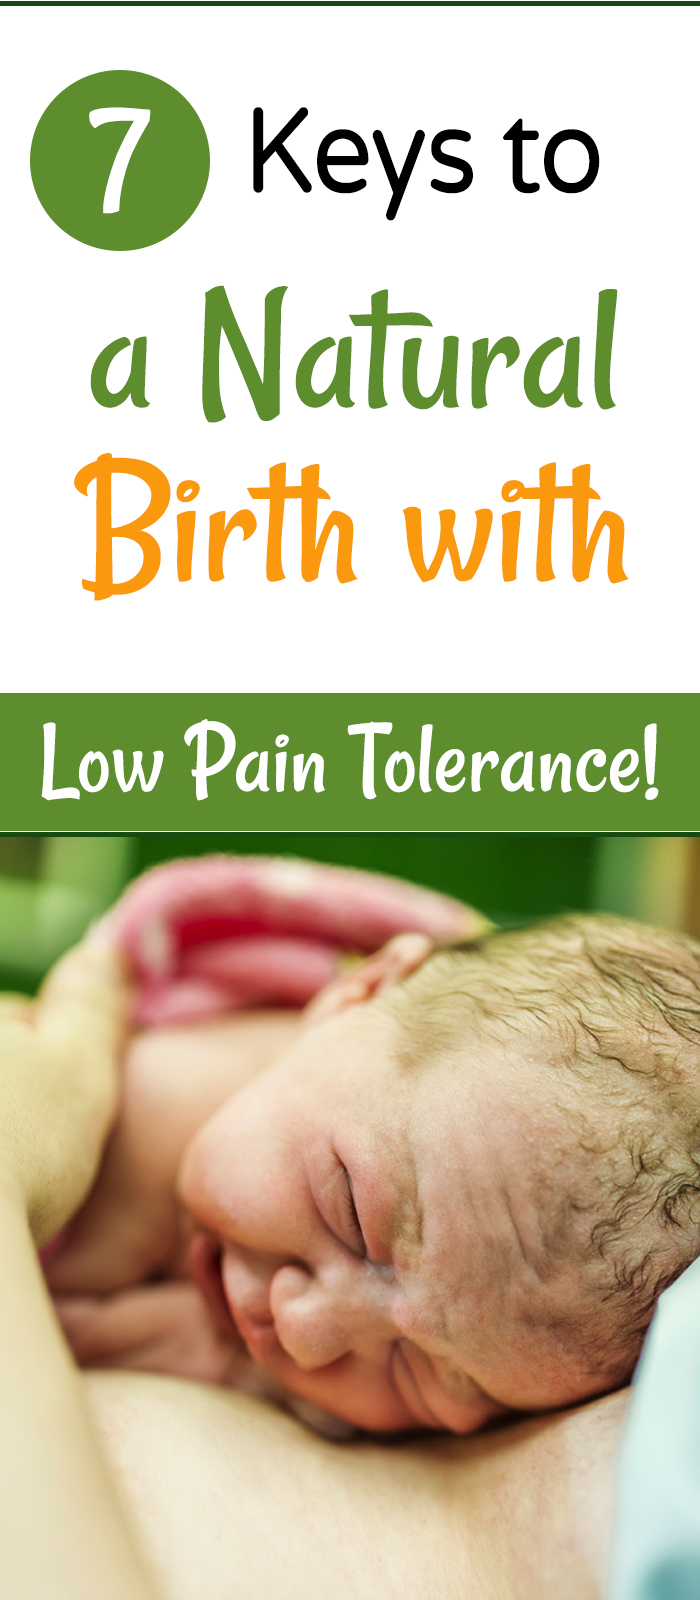 Key to Labor and Delivery with Low Pain Tolerance